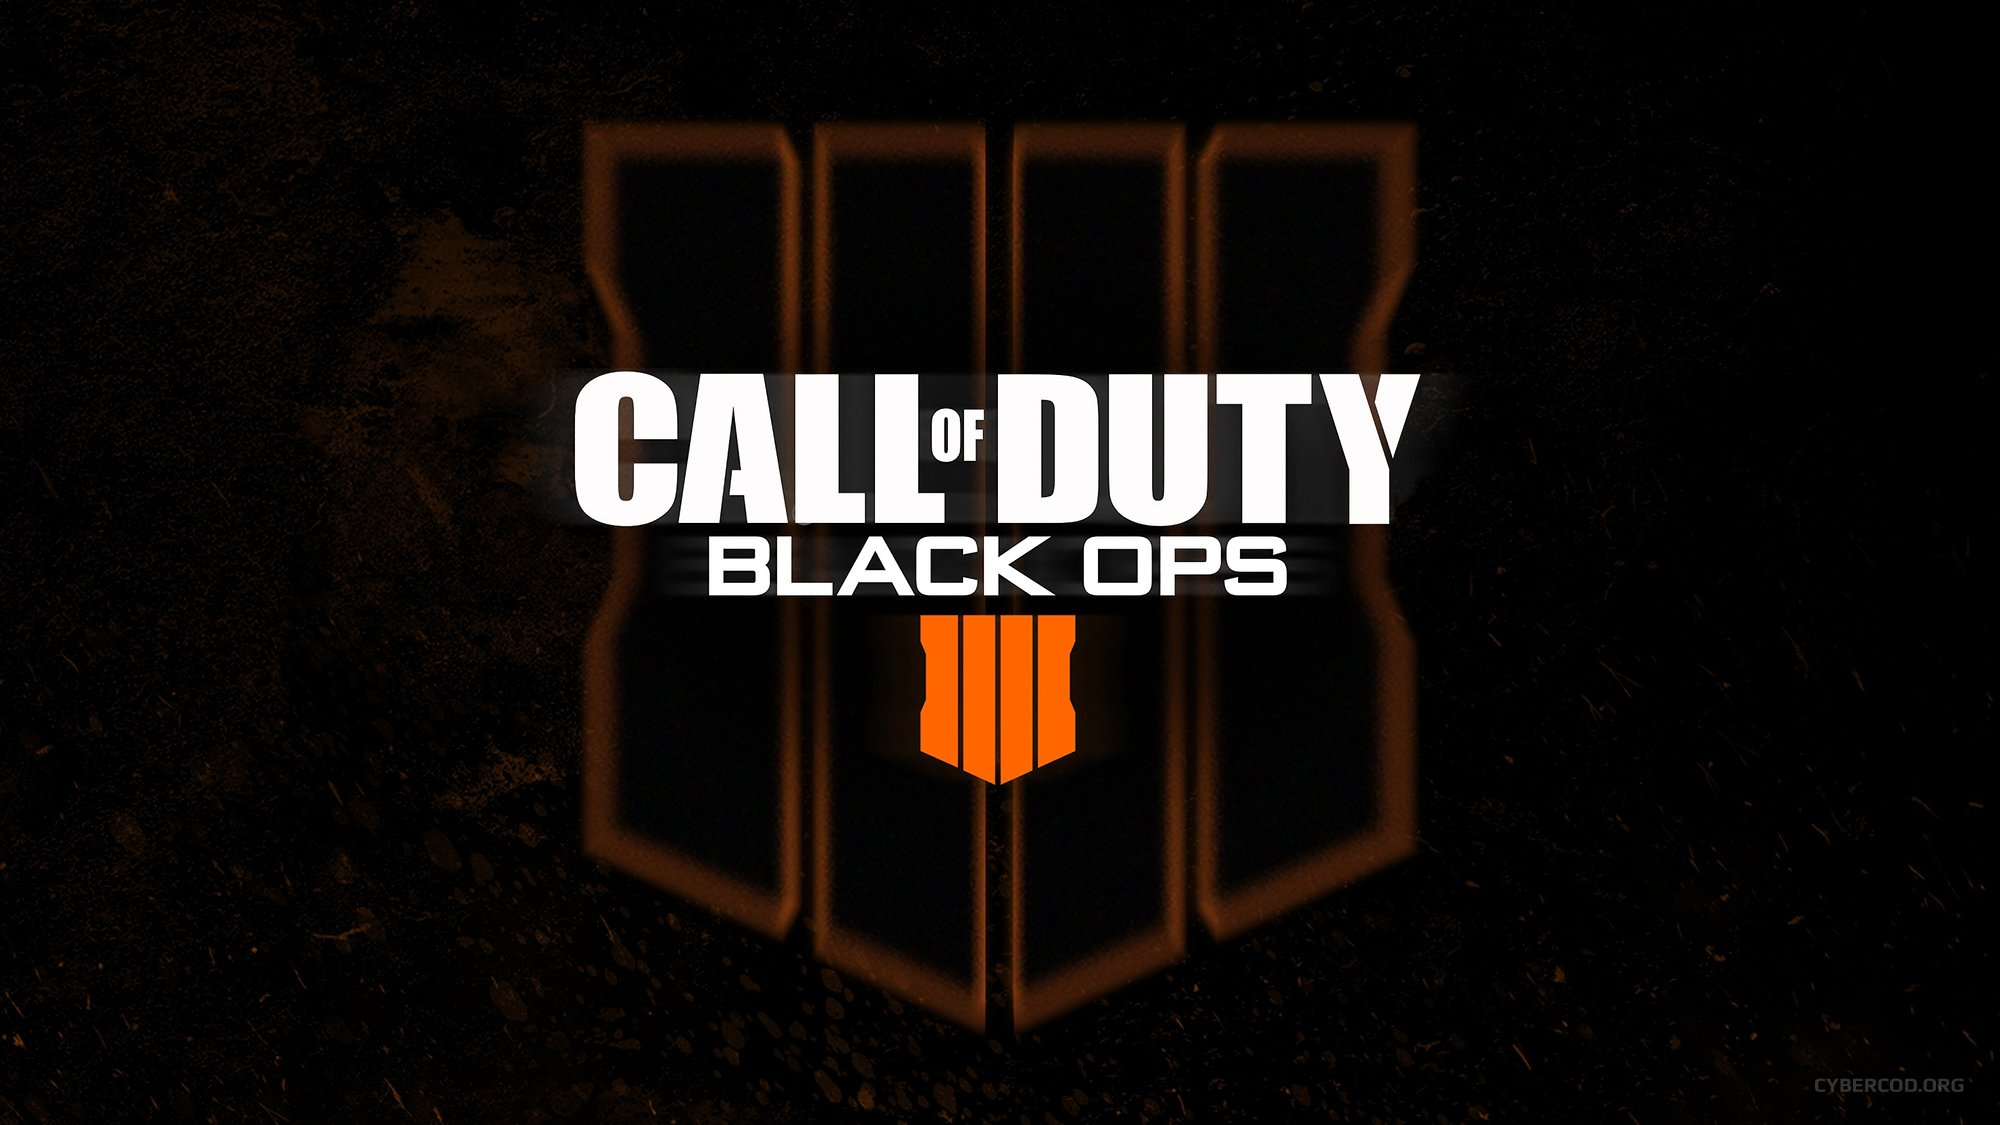 CALL OF DUTY: BLACK OPS IIII LOGO